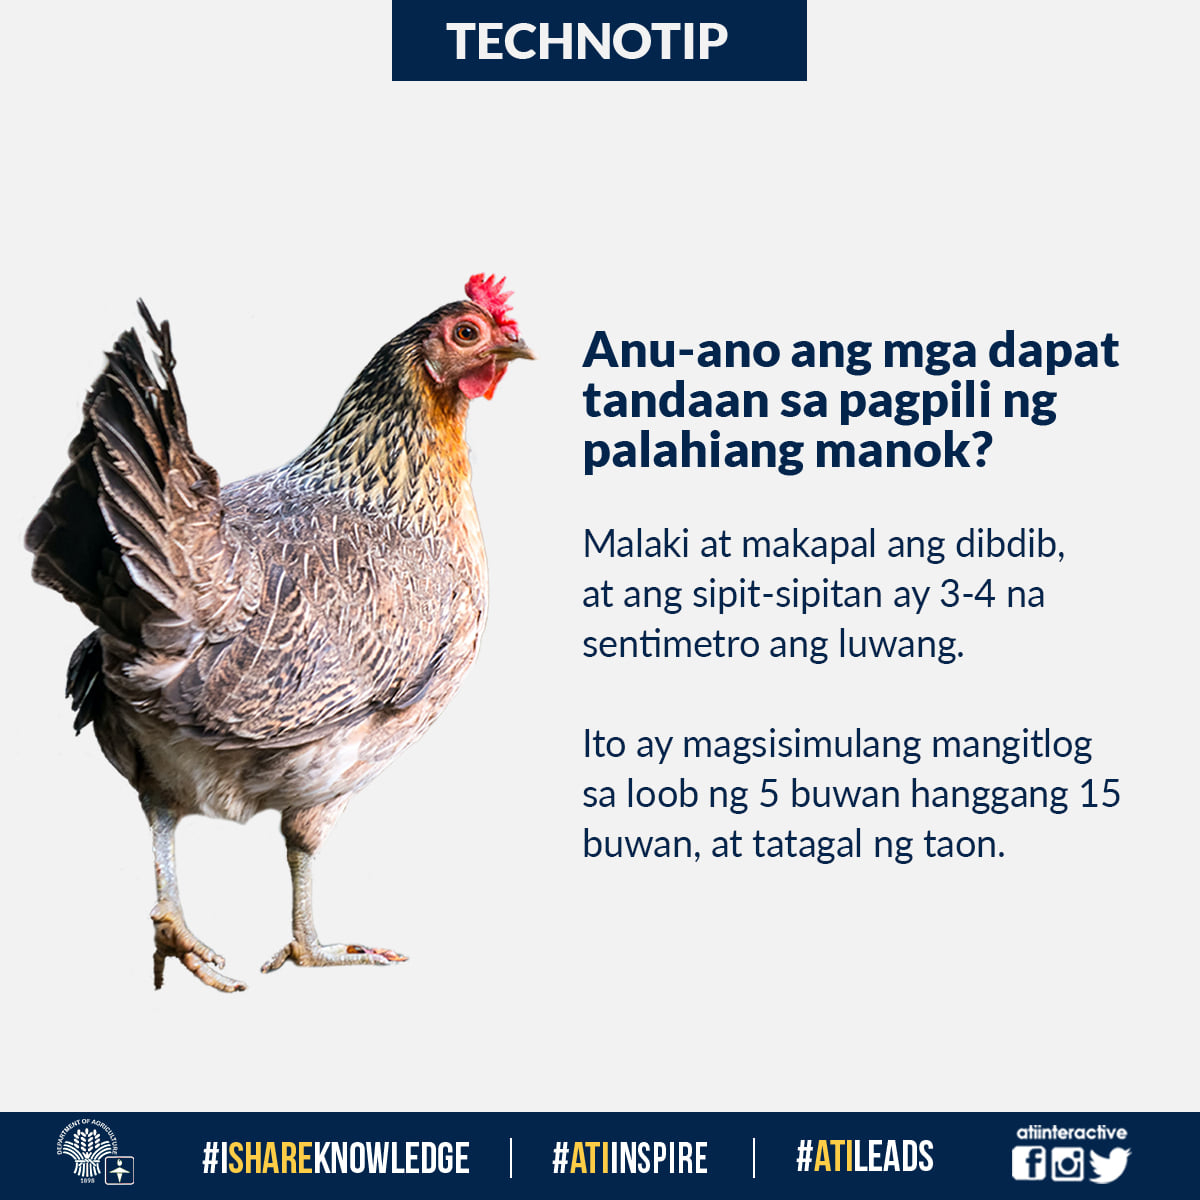 Elearning For Agriculture And Fisheries | Agricultural with Kaliskis Ng Manok Swerte